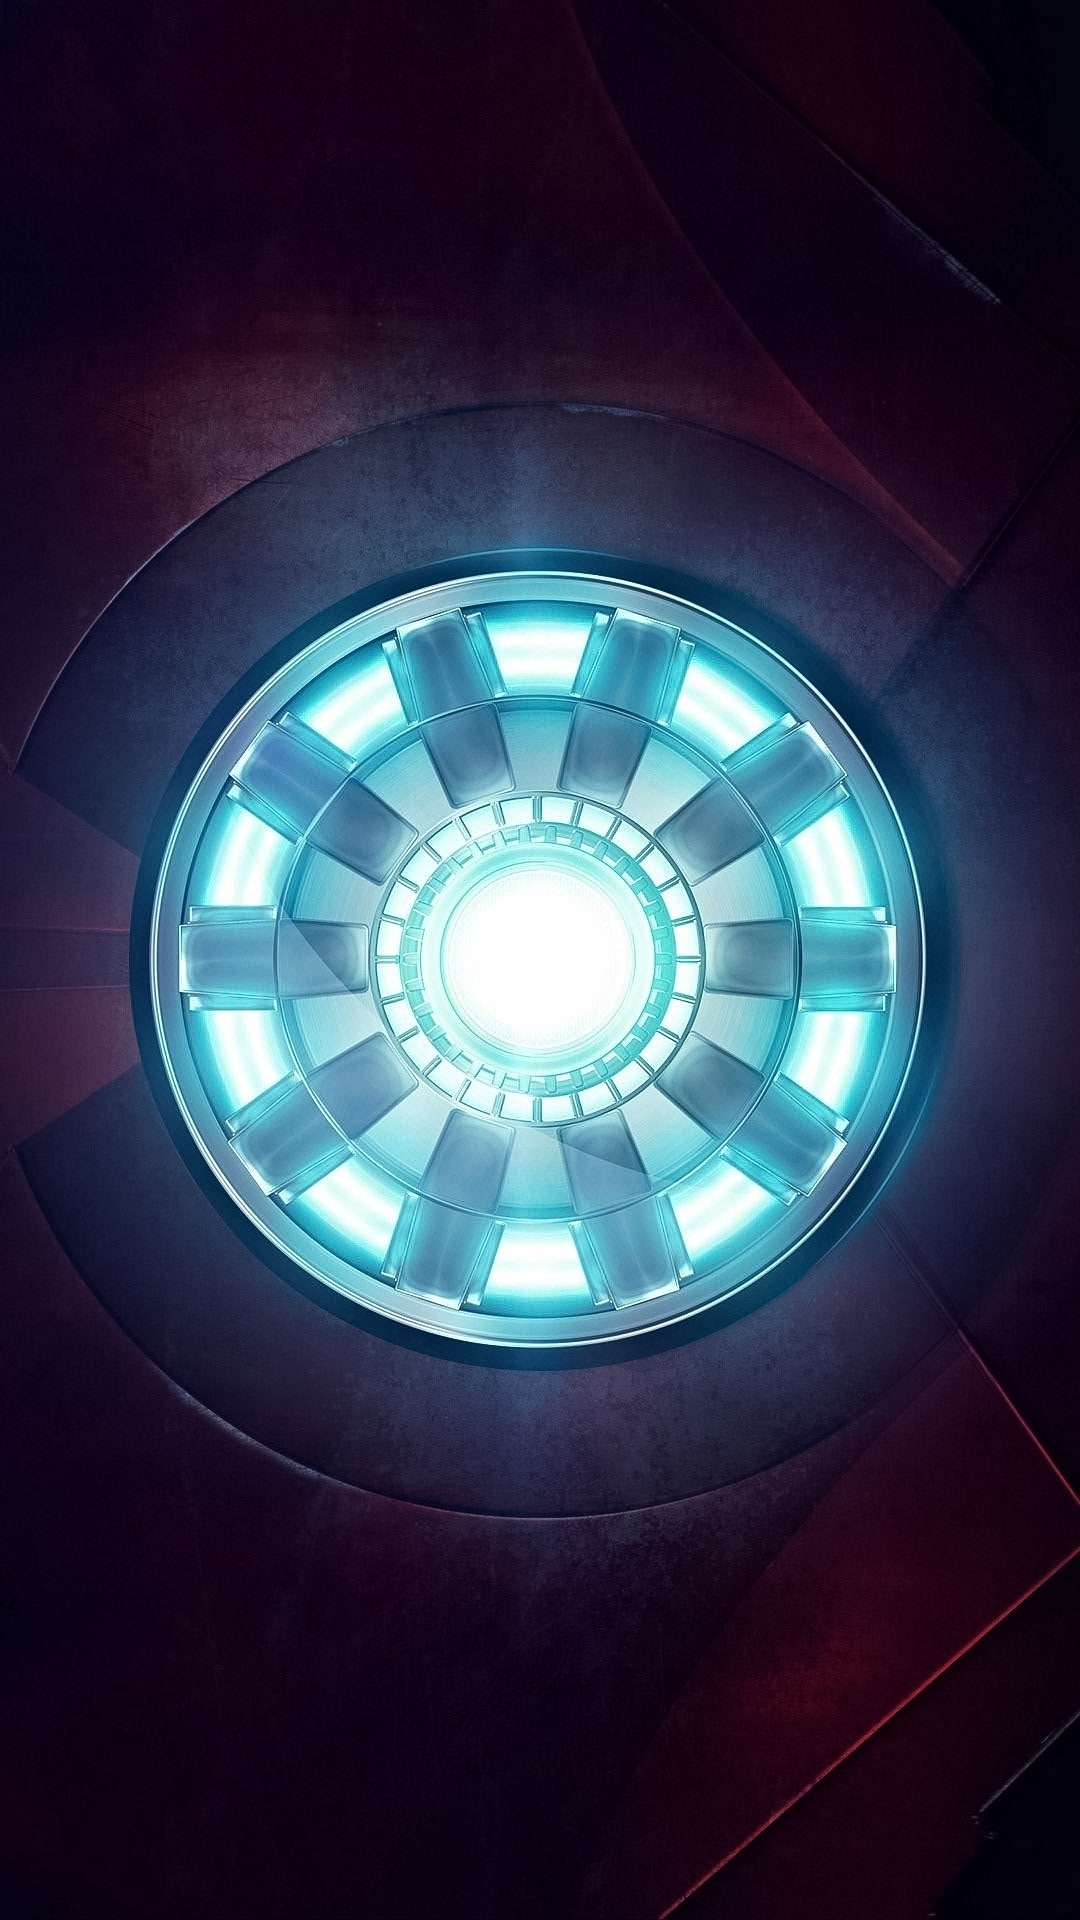 iron man arc reactor wallpaper - visit now to grab yourself a super